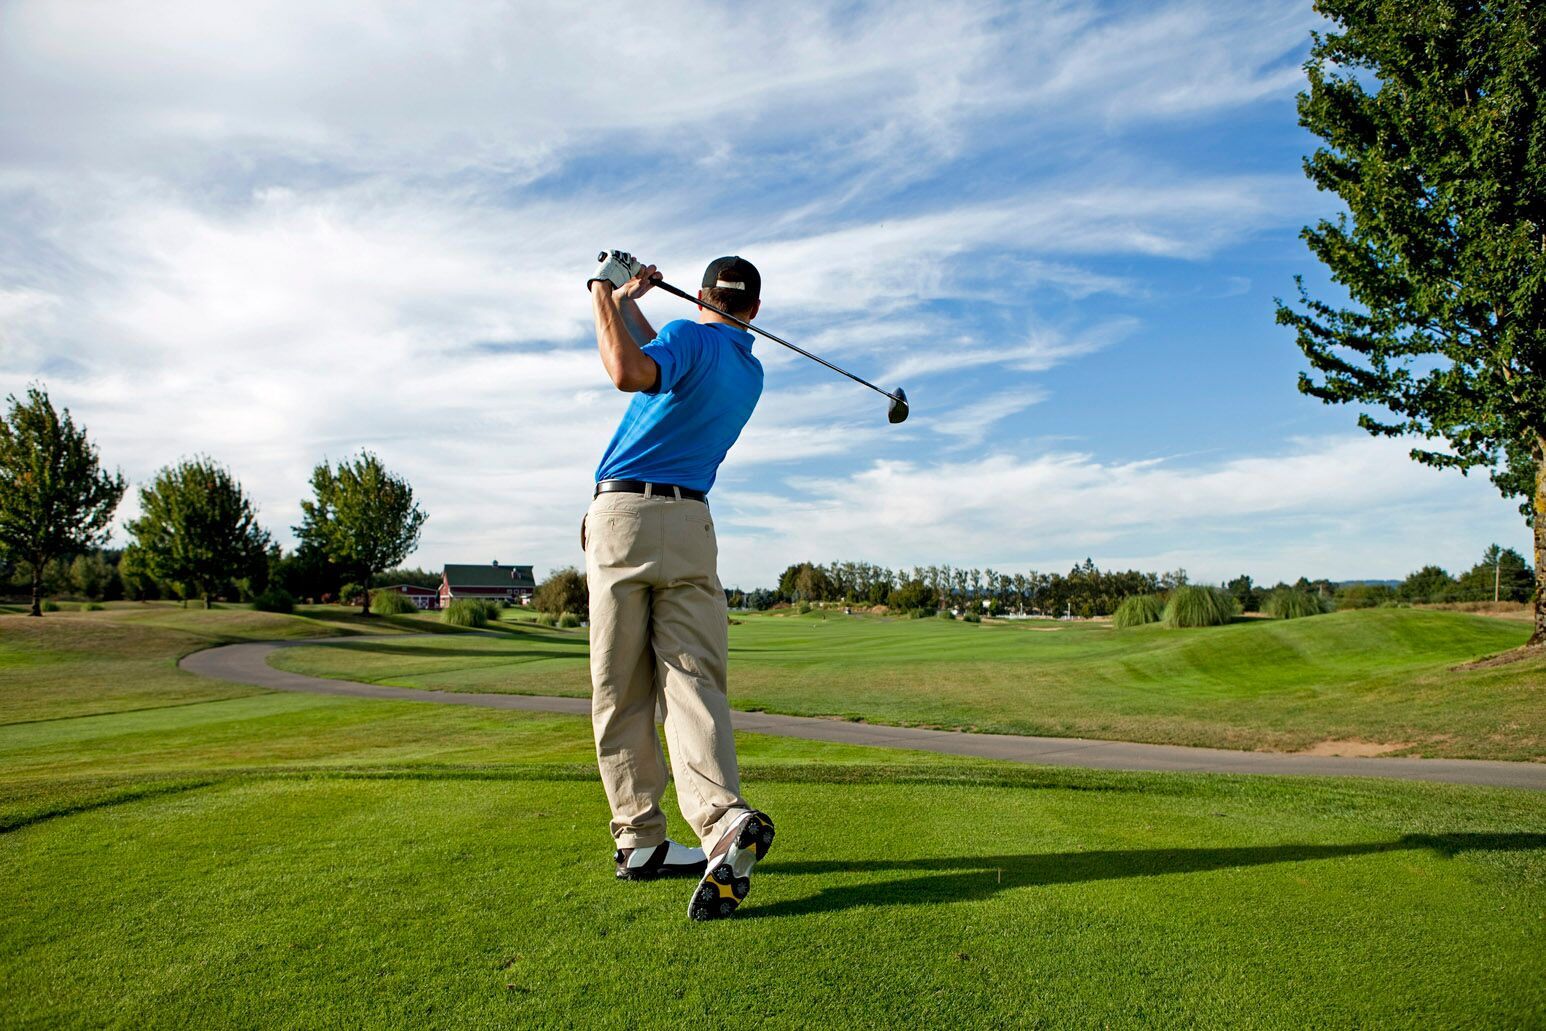 A male golfer takes a swing. Randy Cohn, MD, discusses common golf injuries and shows how you can prevent them.